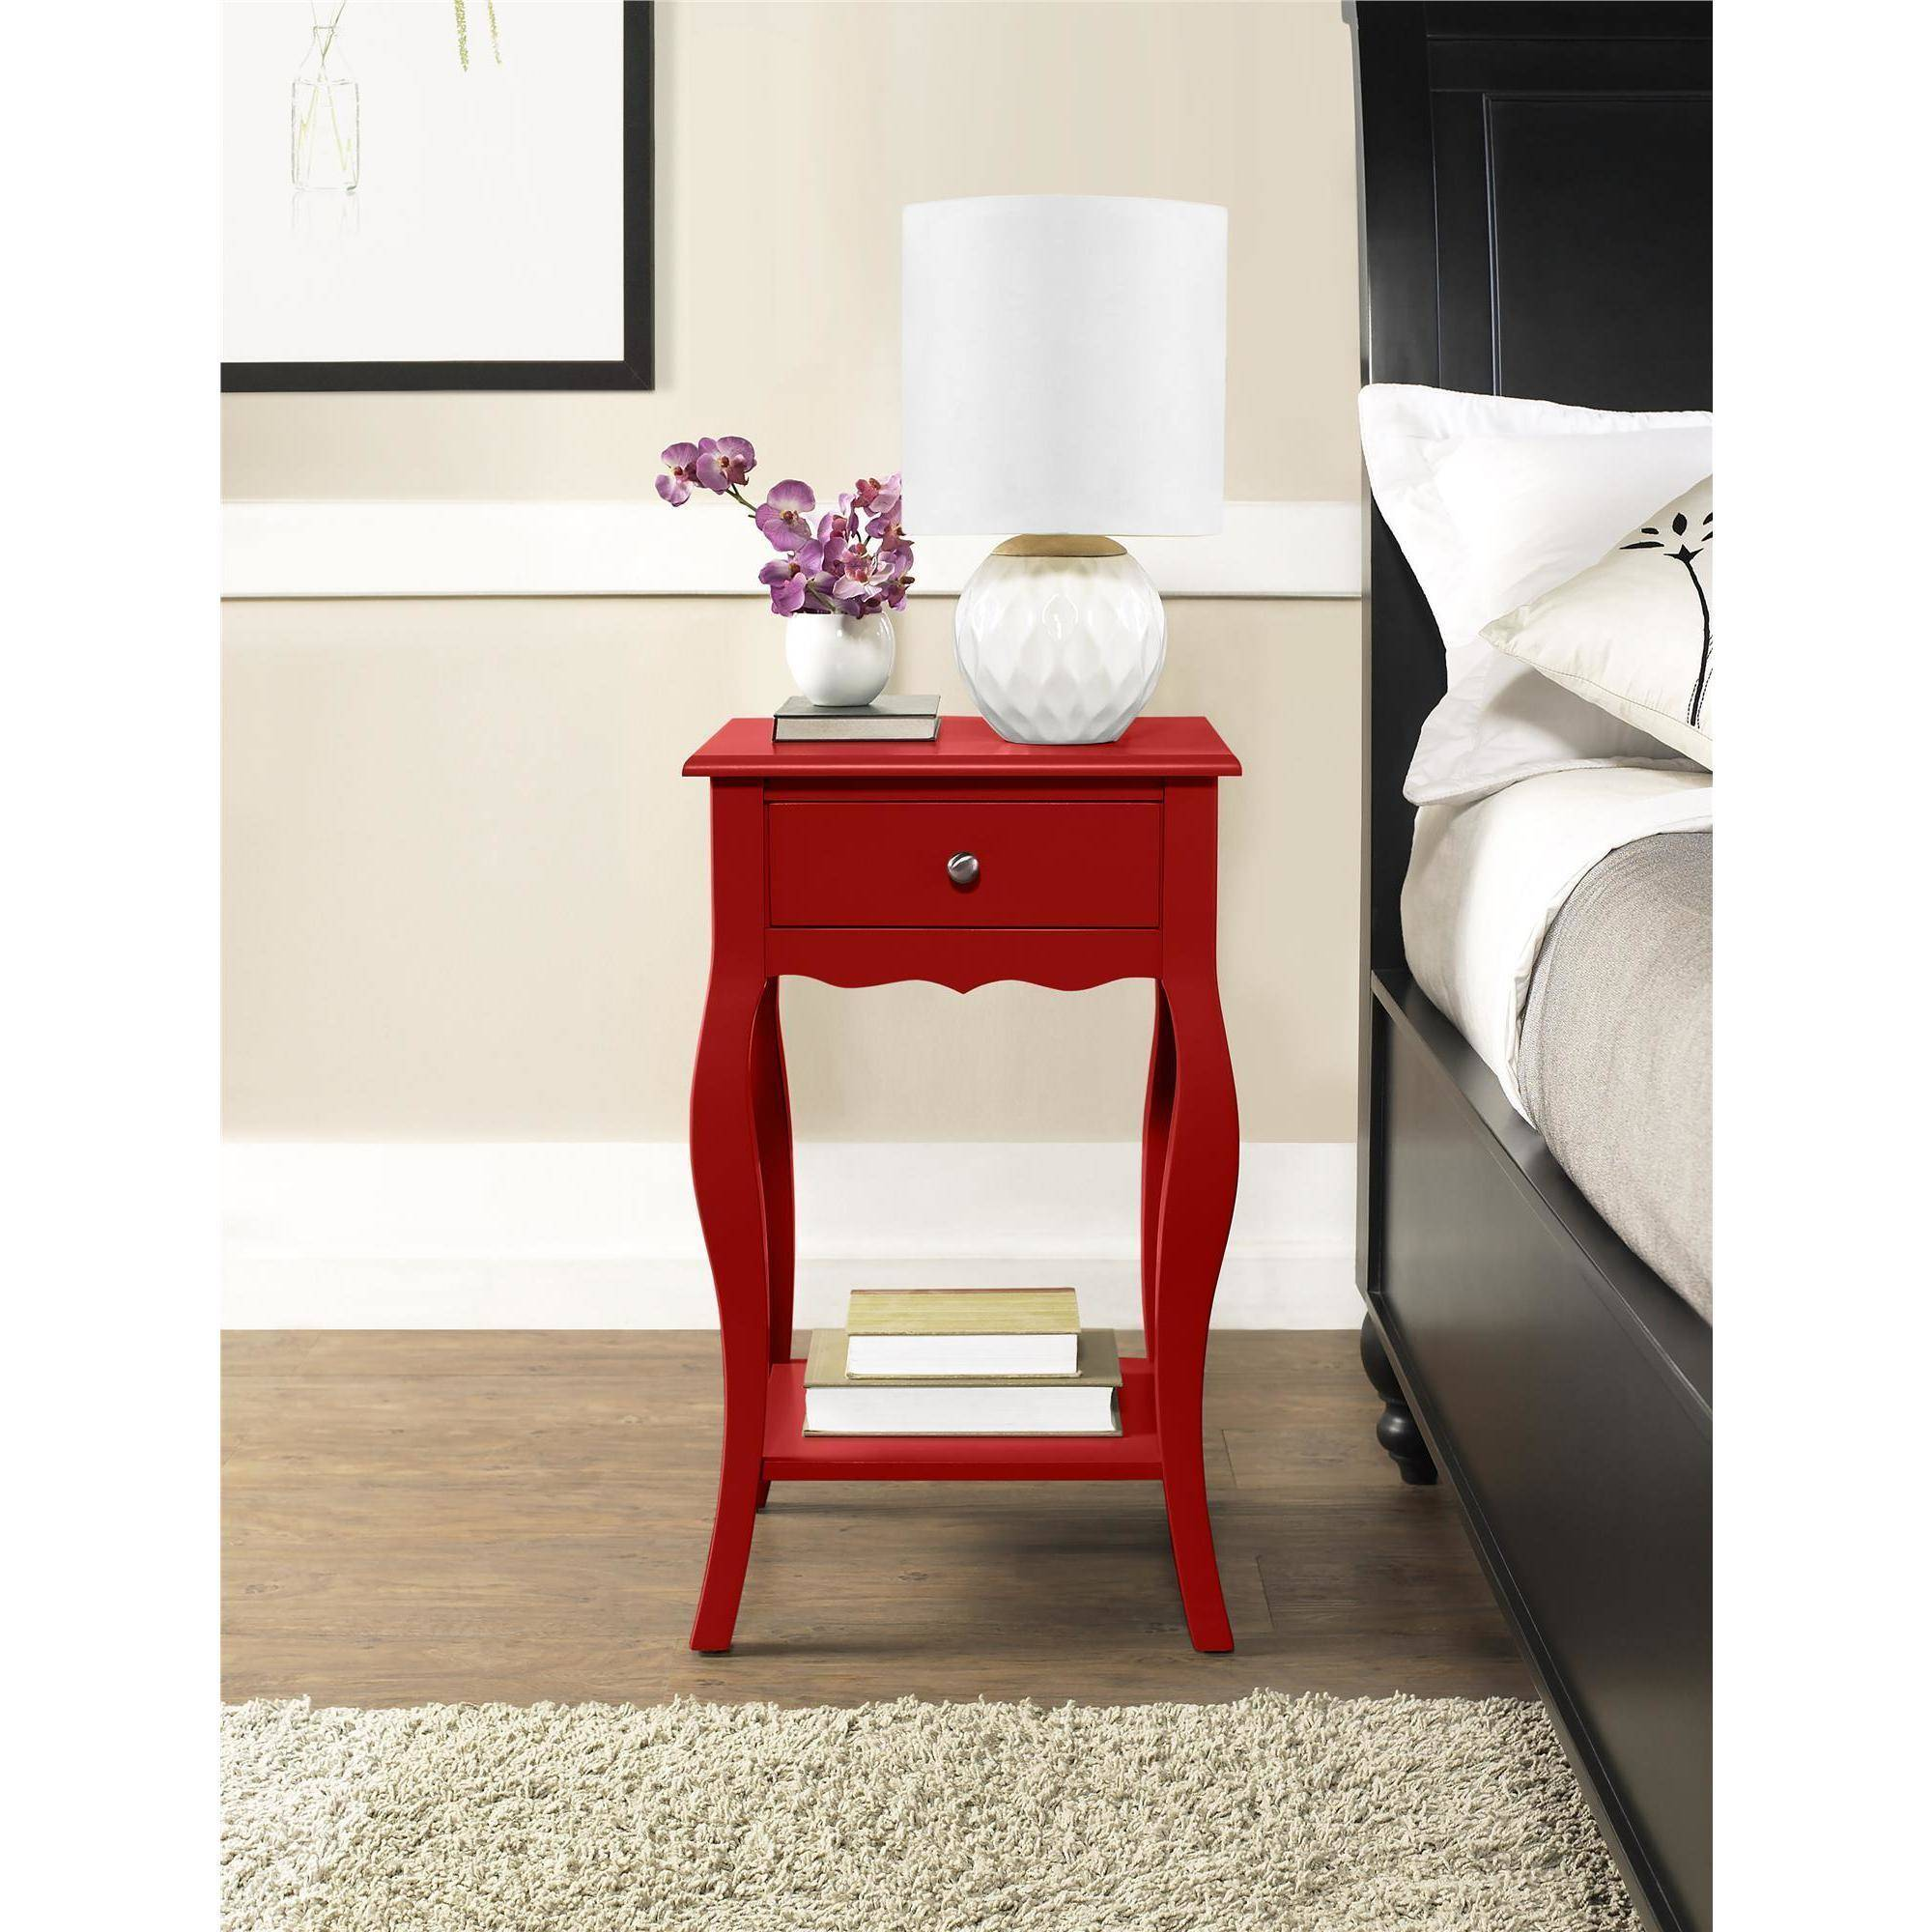 ameriwood home kennedy accent table red small rustic round side blue distressed drum set seat kidney shaped top hammered brass cloth placemats and napkins tall chest runner